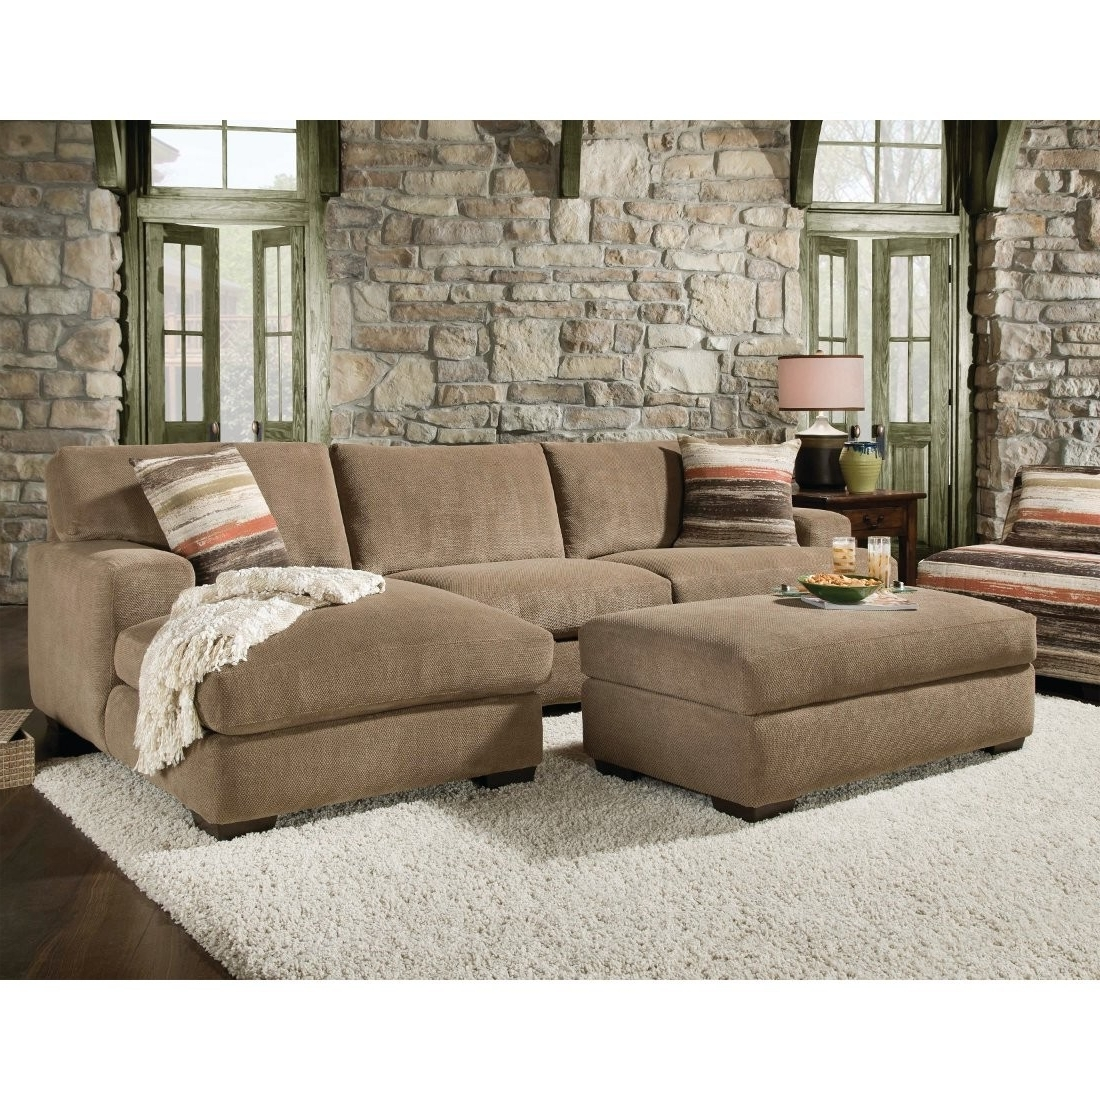 Beautiful Sectional Sofa With Chaise And Ottoman Pictures Within Famous Small Leather Sectionals With Chaise (View 6 of 15)